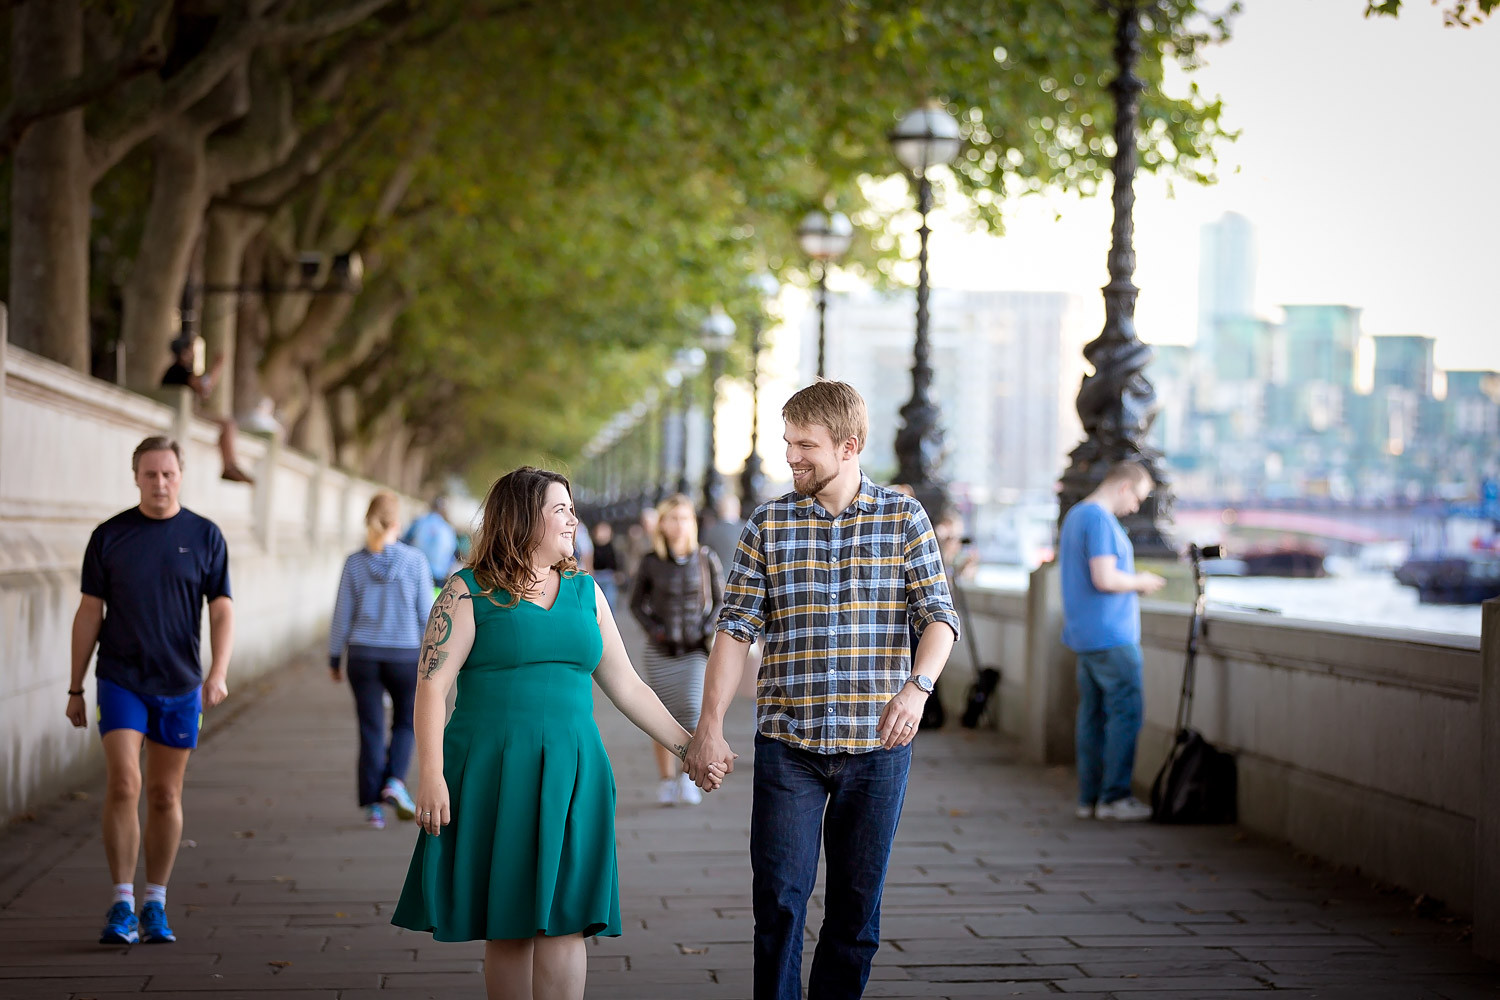 janice-peter-westminster-the-river-thames-london-engagement-8